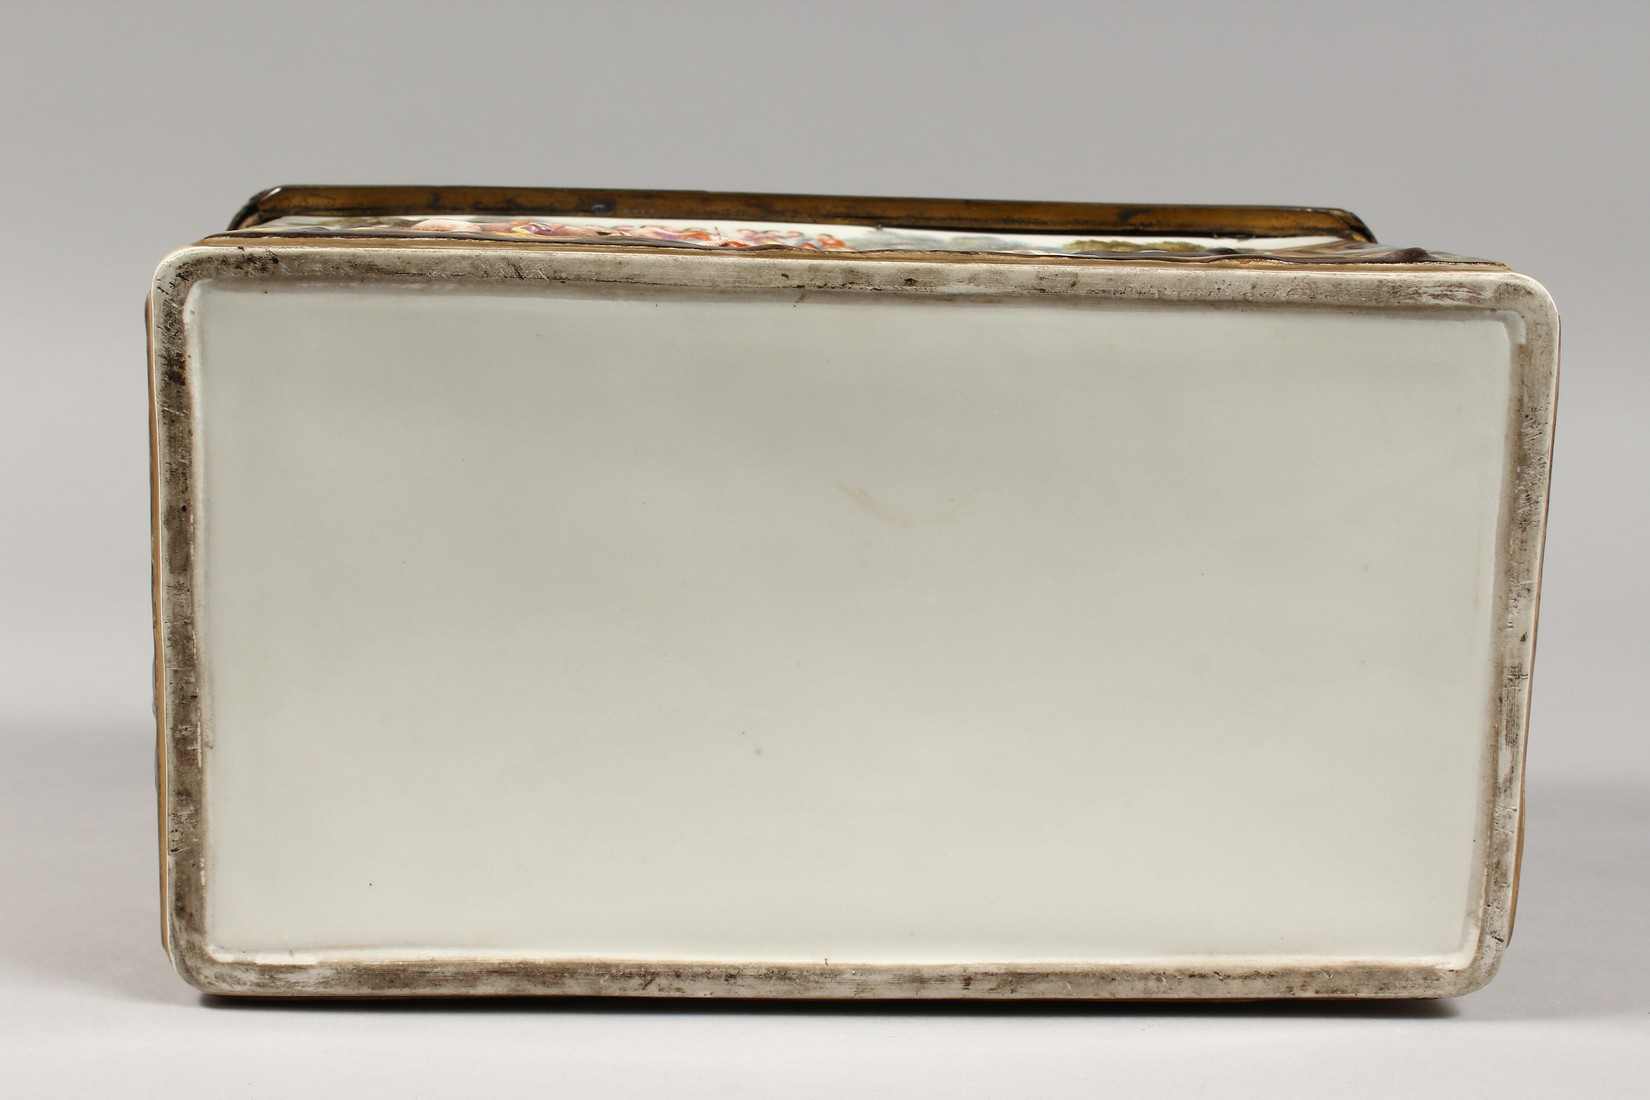 A GOOD CAPODIMONTE CASKET with classical figures in relief 9.5 ins wide. - Image 7 of 8